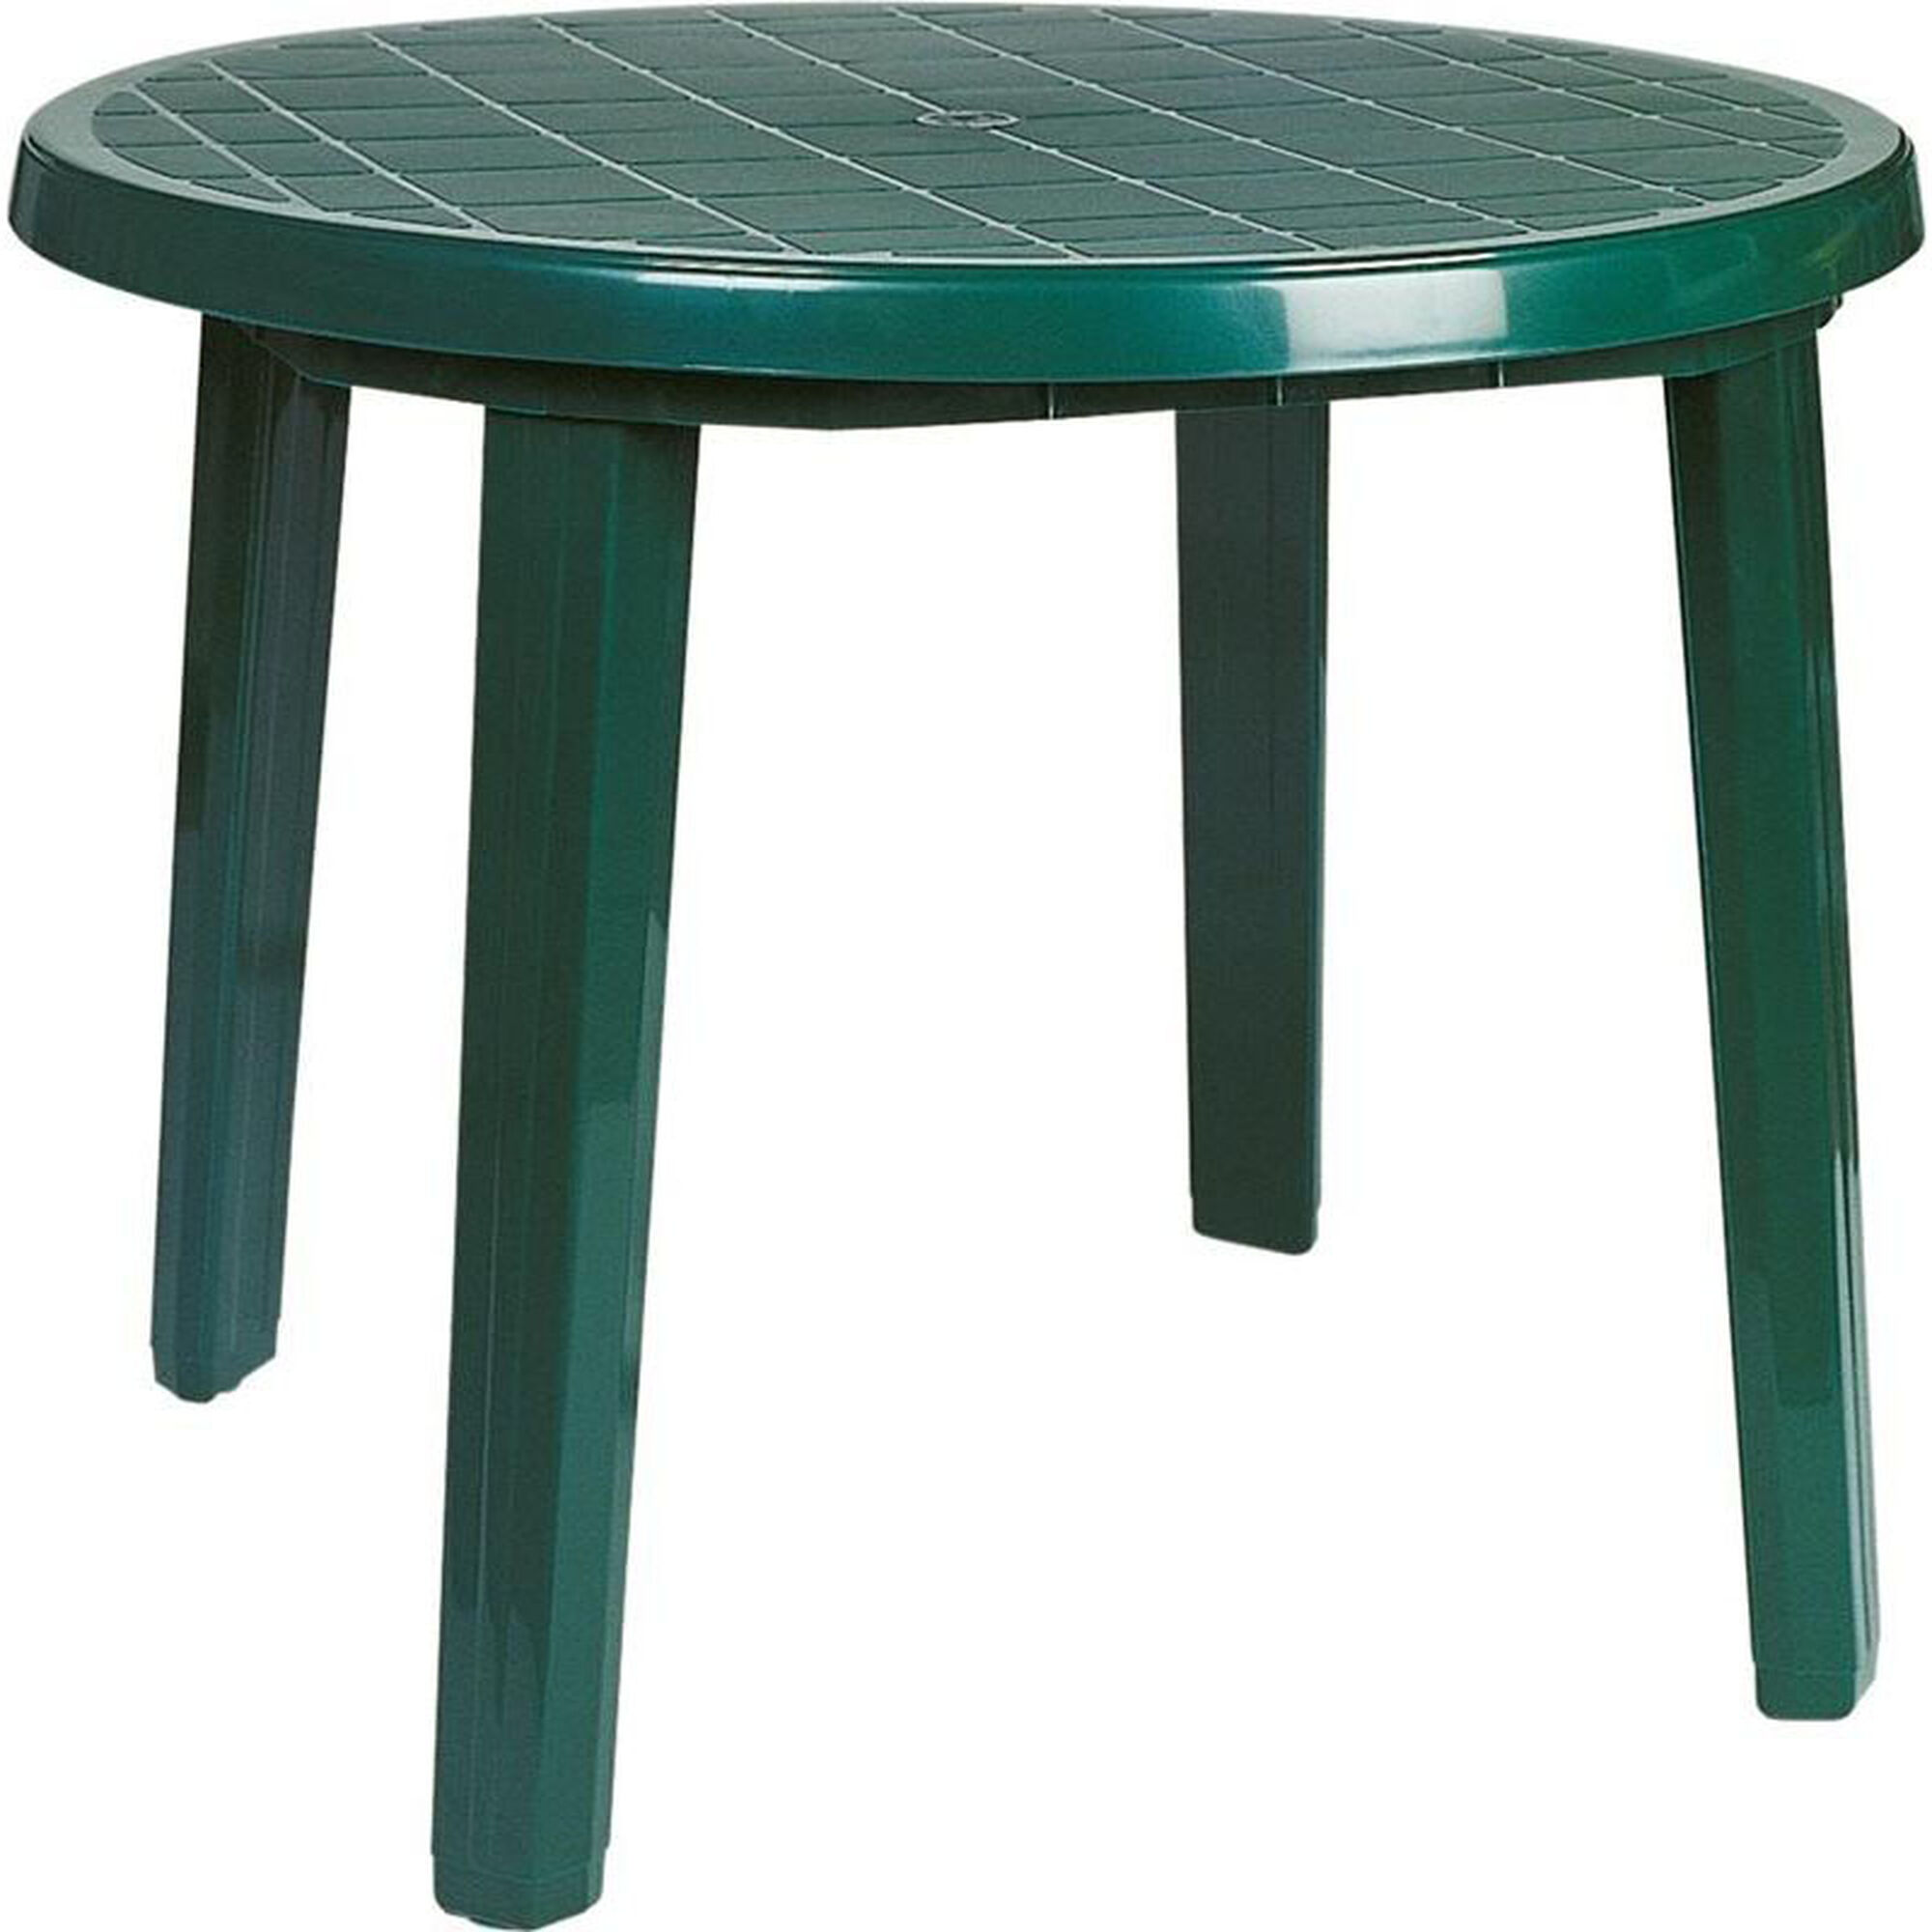 Sunny Outdoor Resin 355D Round Dining Table with  : COMPAMIAISP125 GRE CMPMAINIMAGE from www.bizchair.com size 2000 x 2000 jpeg 212kB